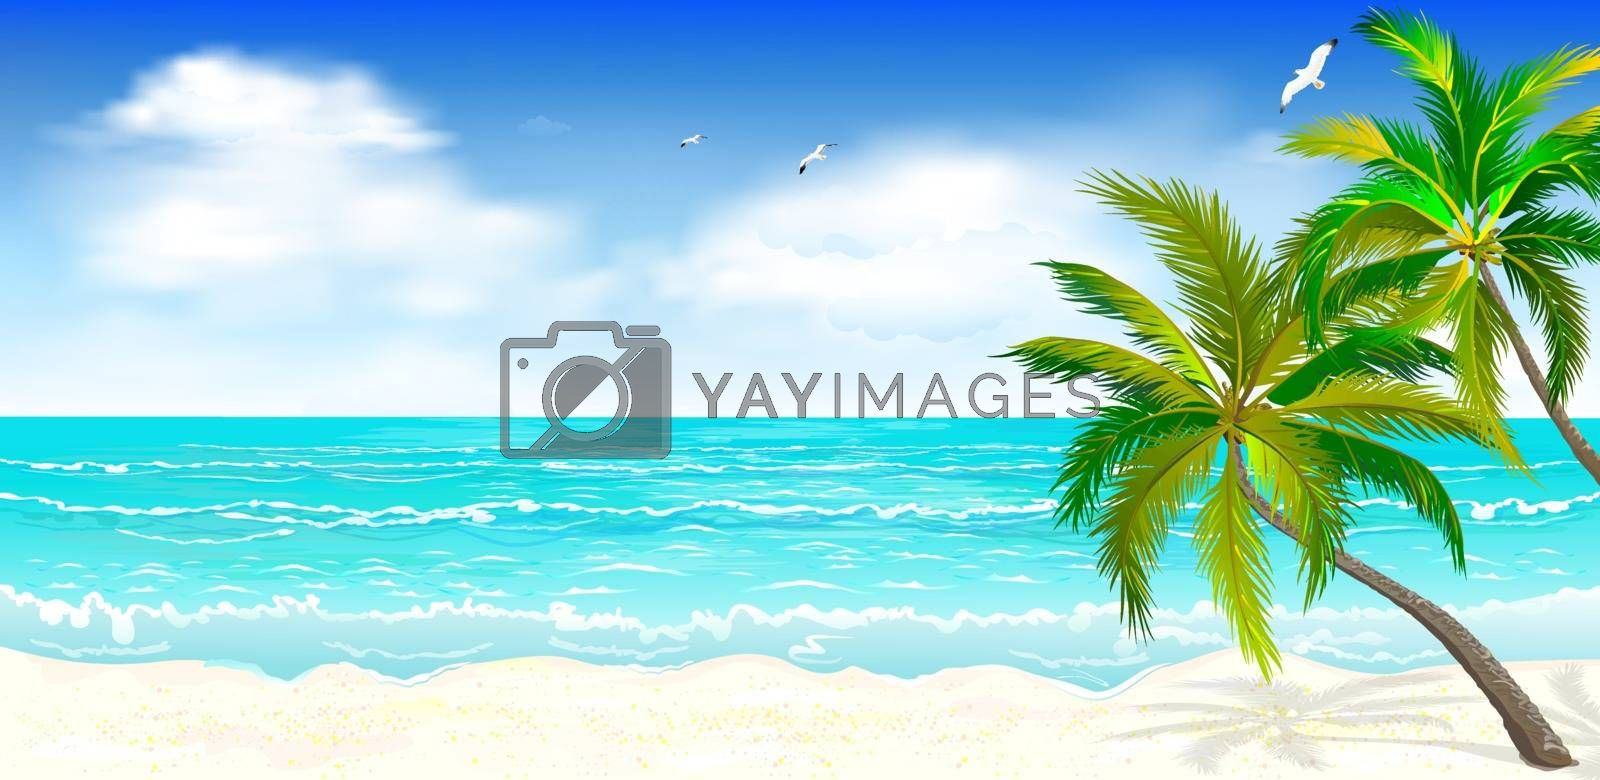 Tropical beach, palm trees 1 by liolle